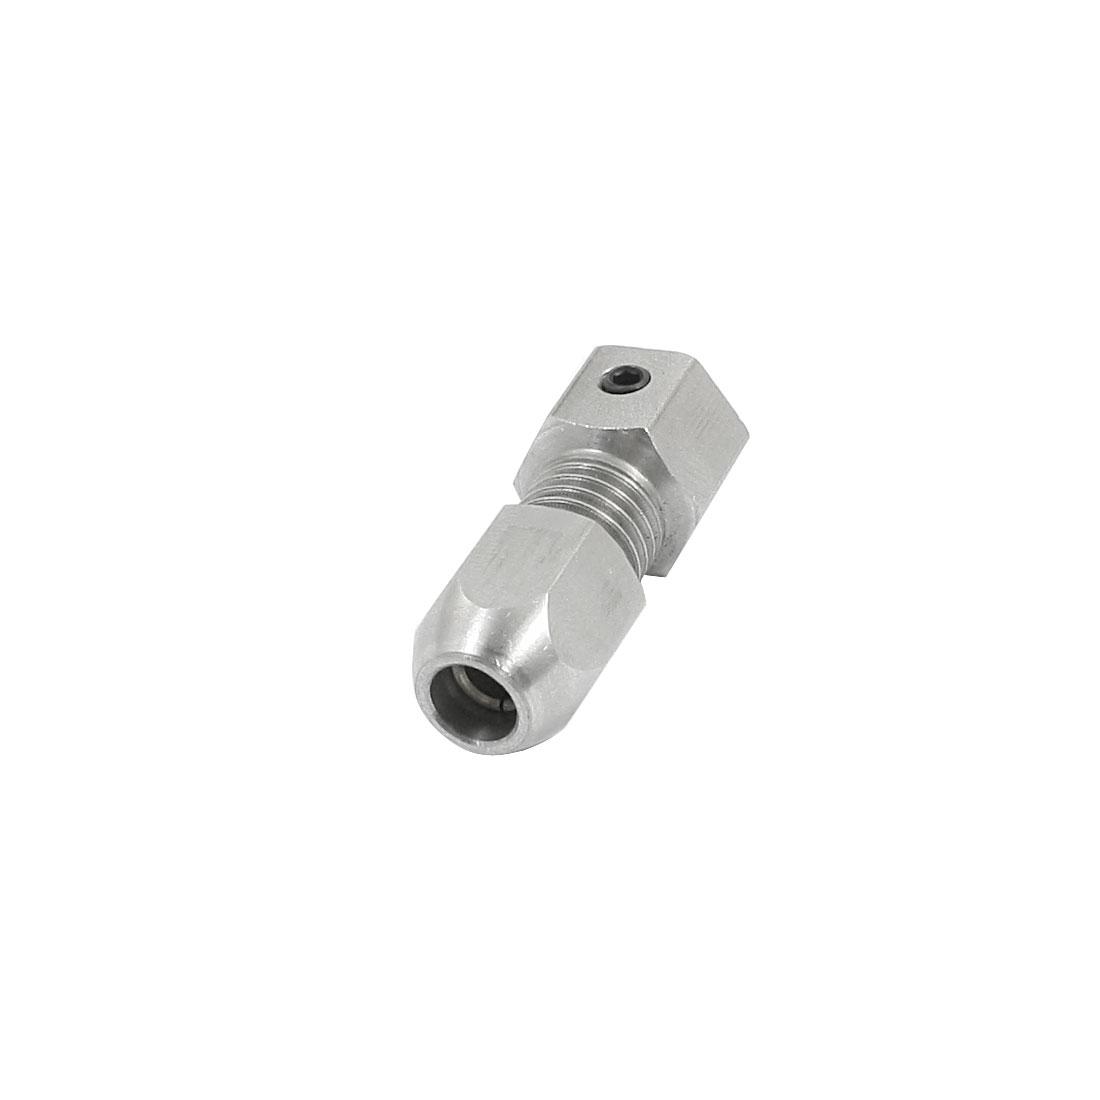 6.35mm Threaded to 4.76mm Stainless Steel Collet Coupler Shaft for RC Boat Gasoline Engine Clutch